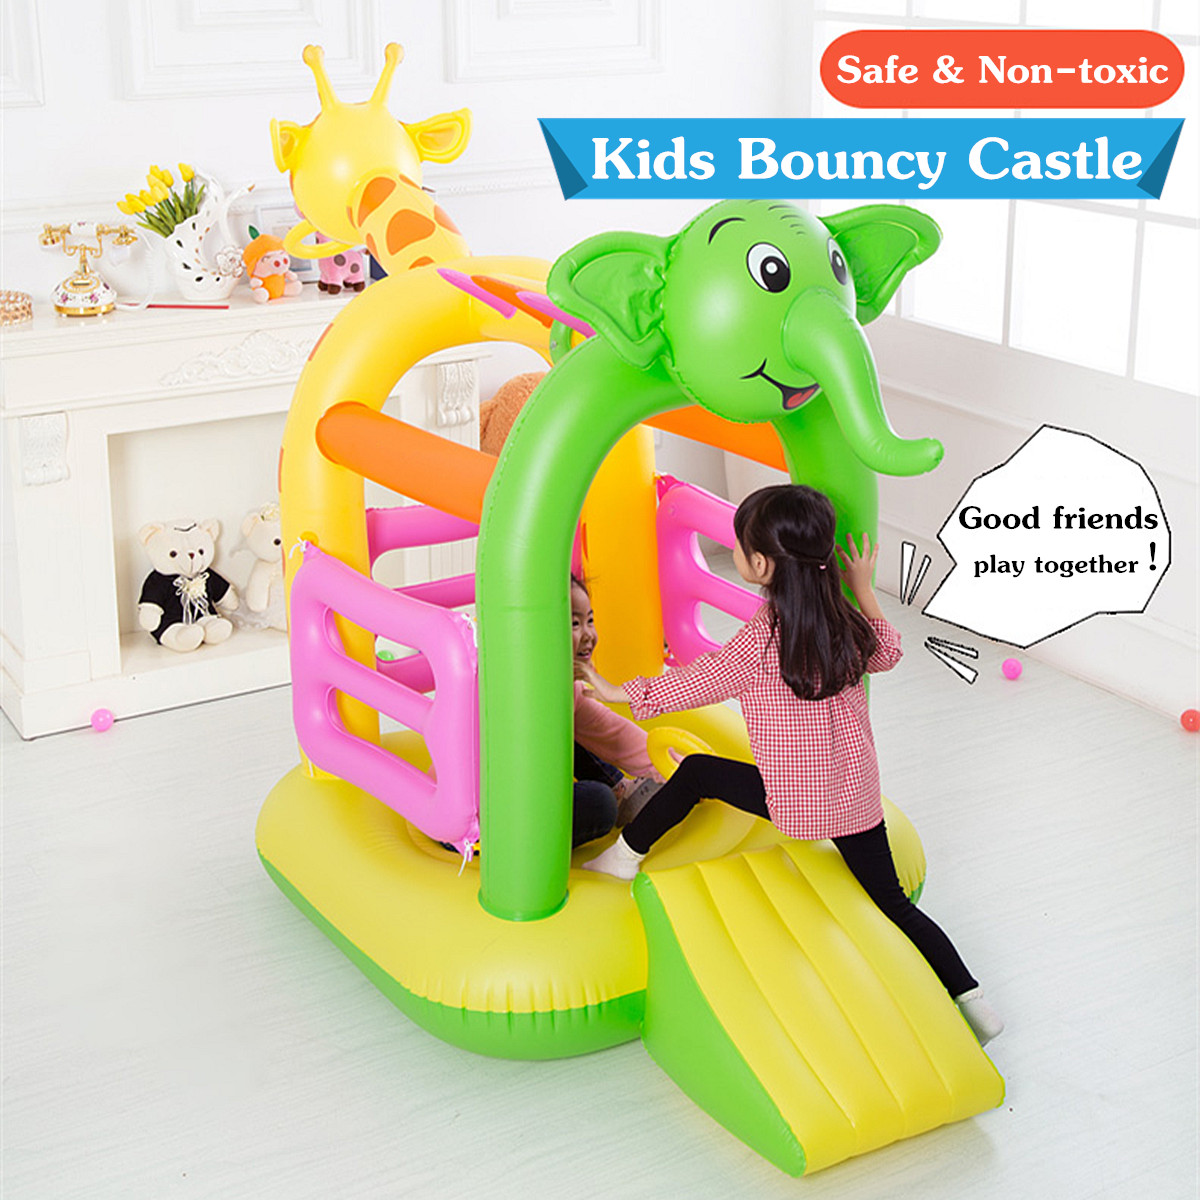 Inflatable Kids Children Bouncy Slide Castle Jumping Bouncer PVC Colorful Non-toxic House Outdoor Play Multi-functional Design зарядное устройство от прикуривателя с 2 мя usb вход 12 24 в 800 ma выход dc 5b 0 5 1000ma